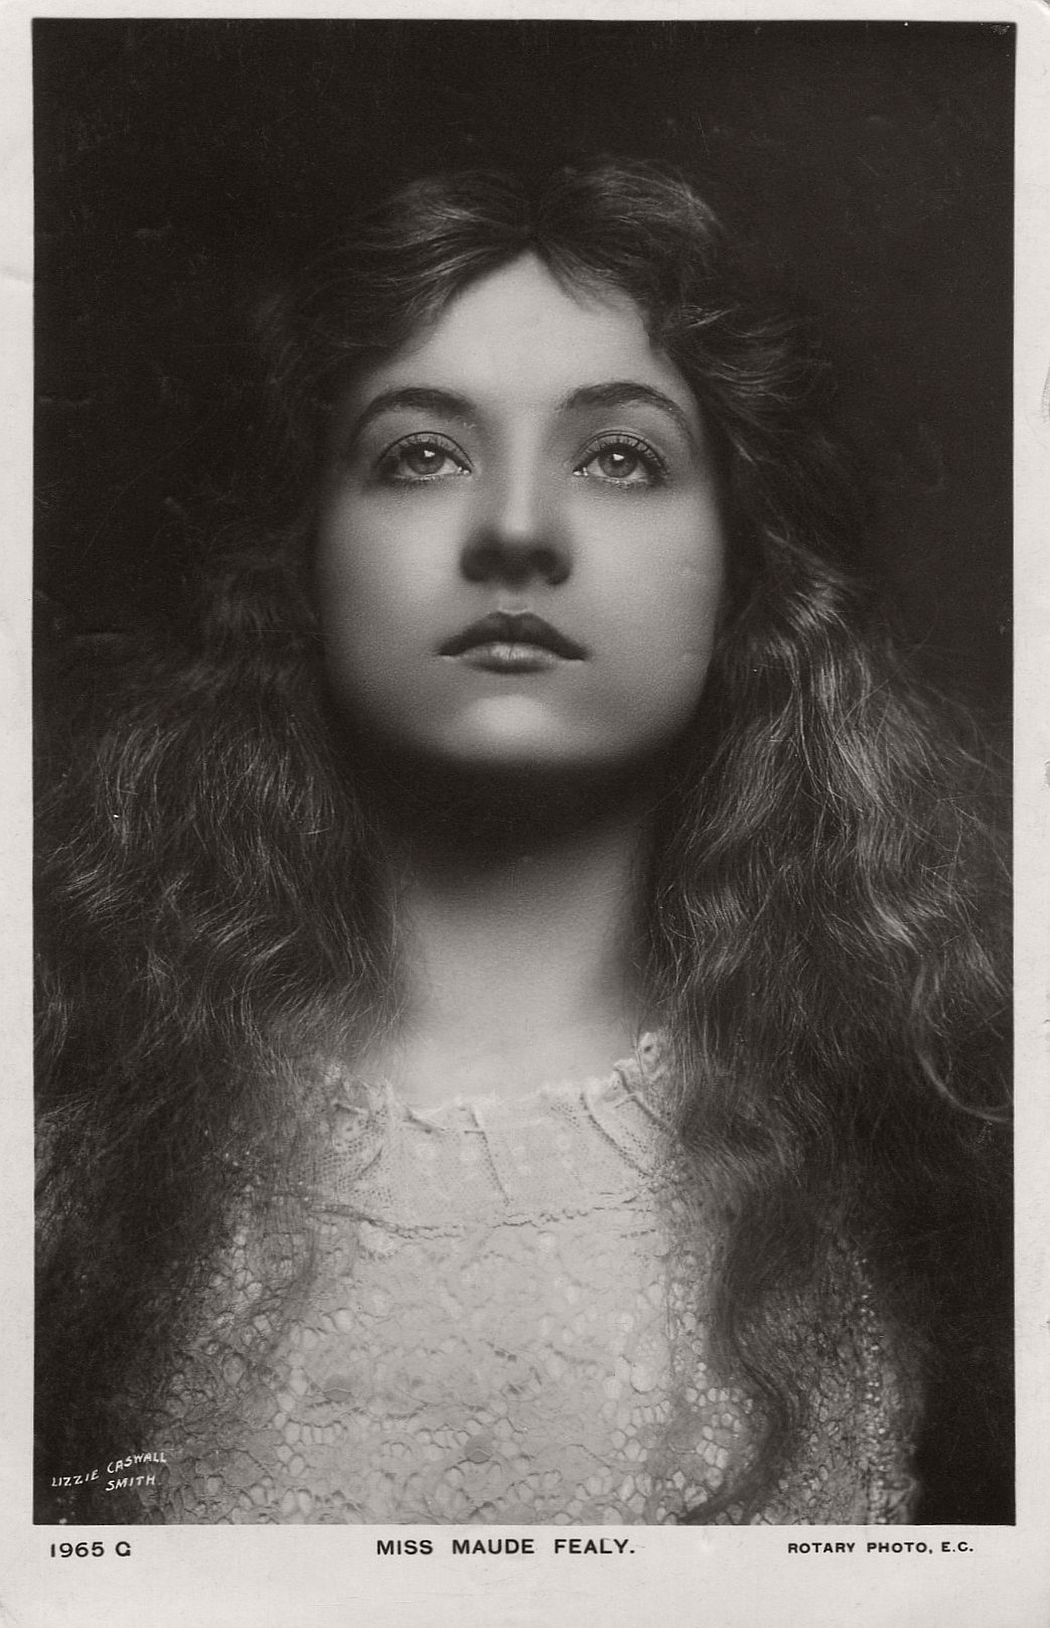 vintage-postcard-of-actress-miss-maude-fealy-1900s-early-xx-century-03